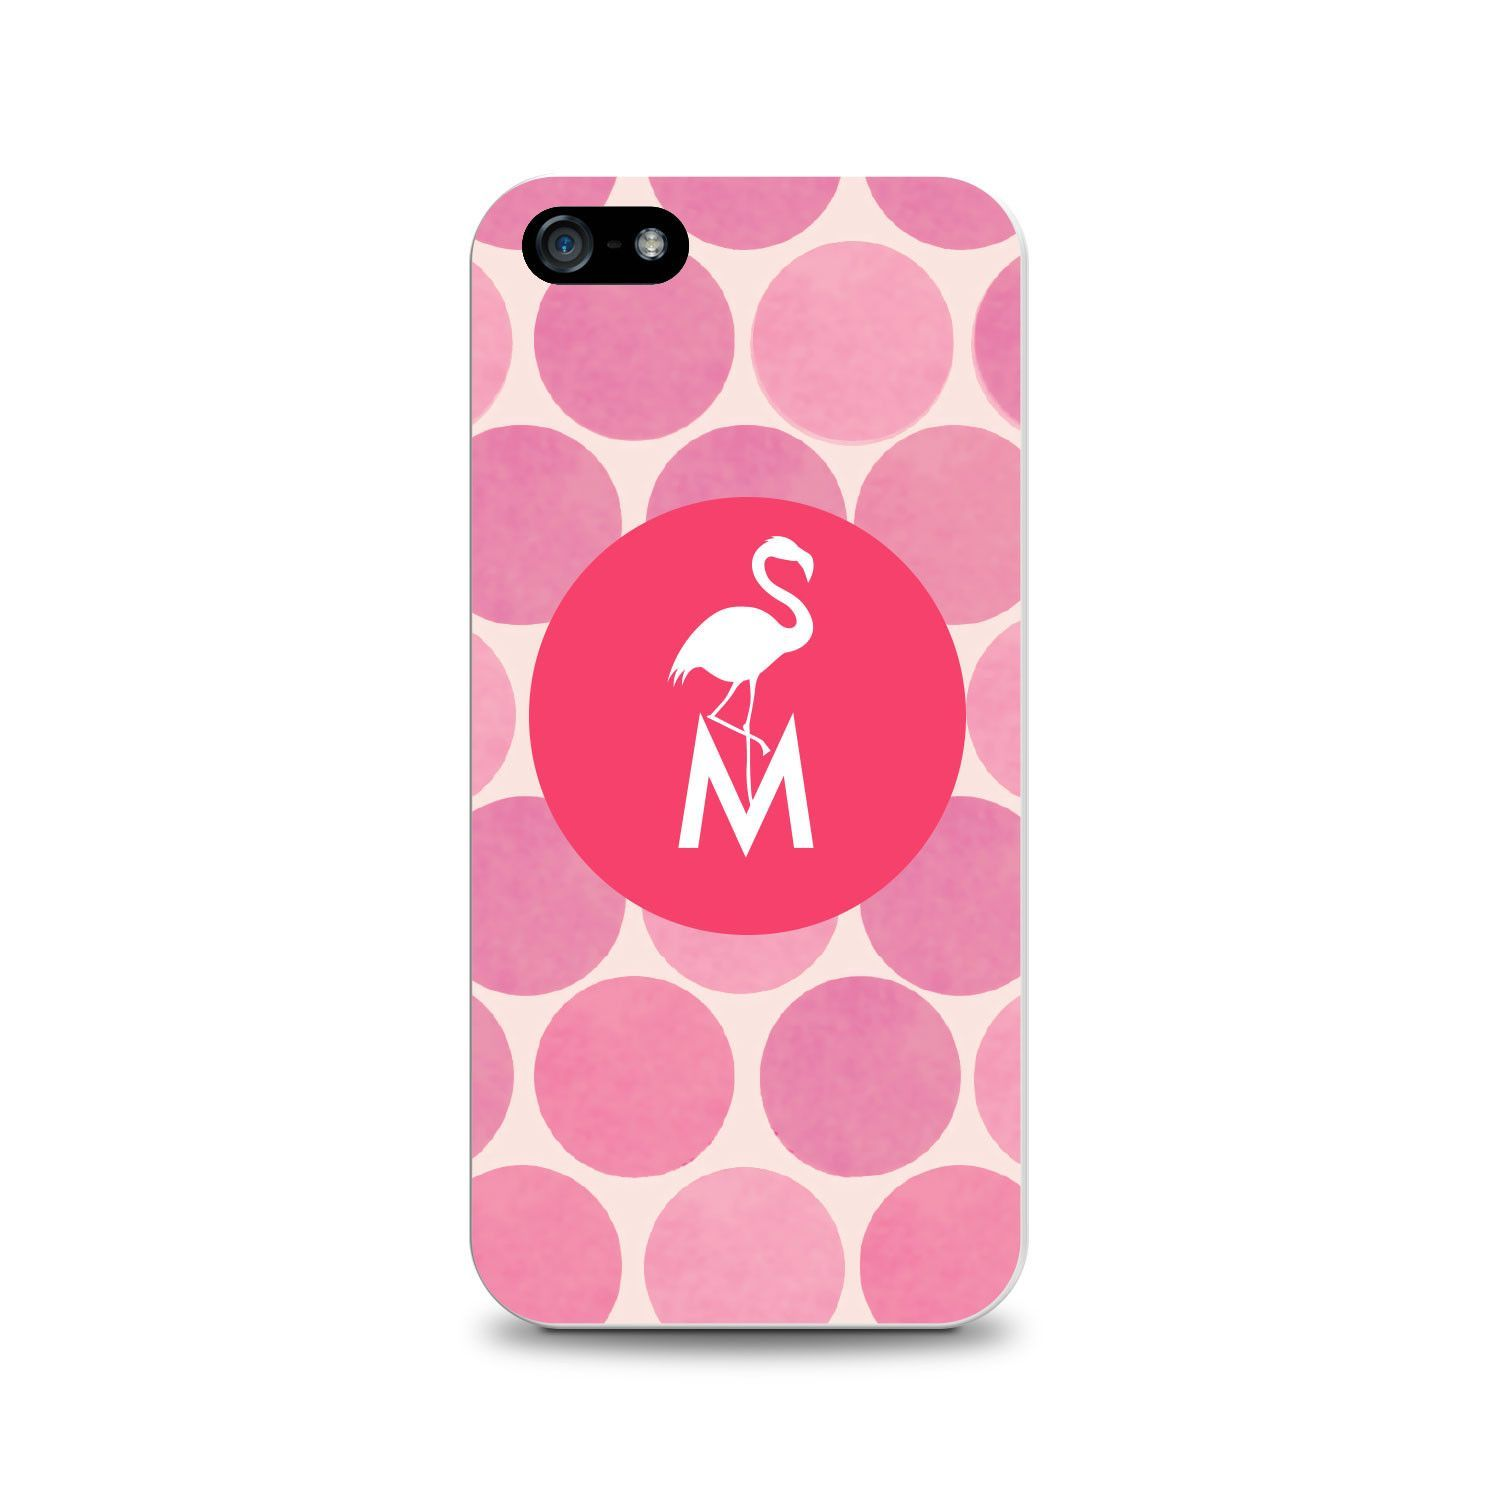 OTM Critter Collection iPhone 5 Case, DOTS, Pink Flamingo- M